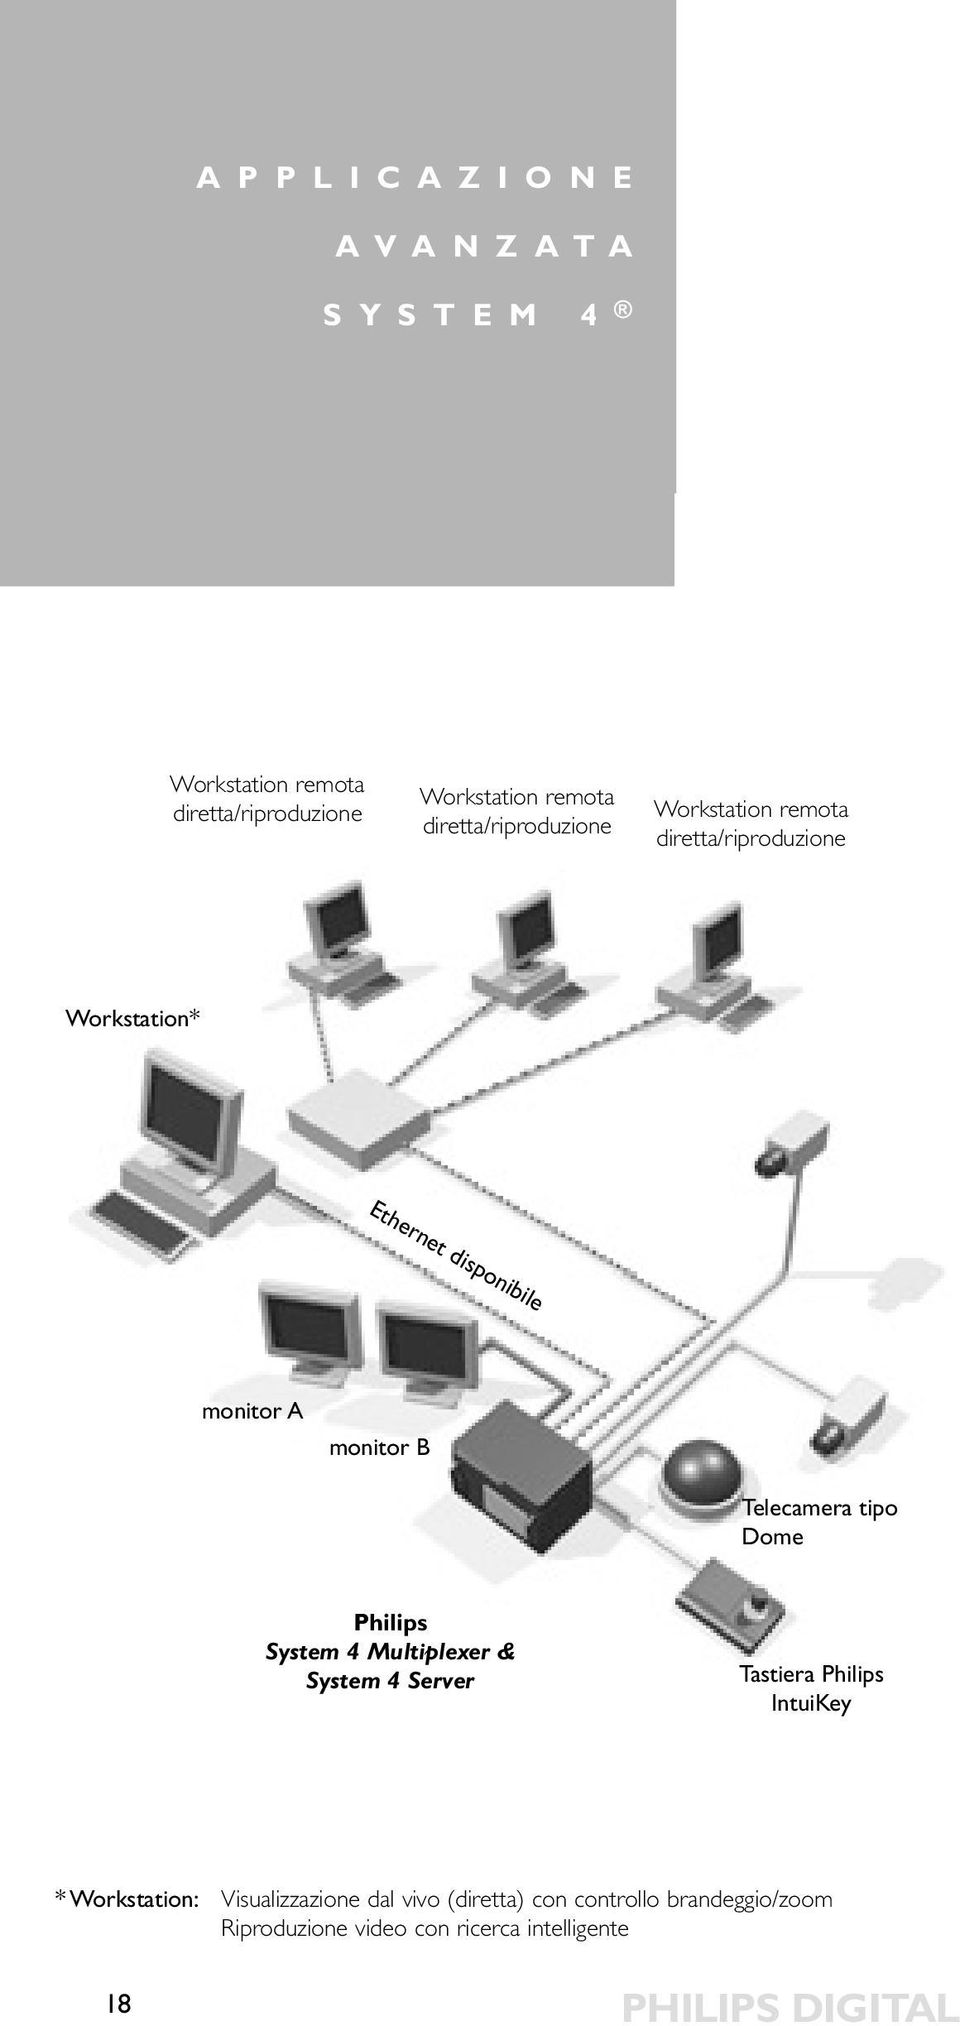 Telecamera tipo Dome Philips System 4 Multiplexer & System 4 Server Tastiera Philips IntuiKey * Workstation: